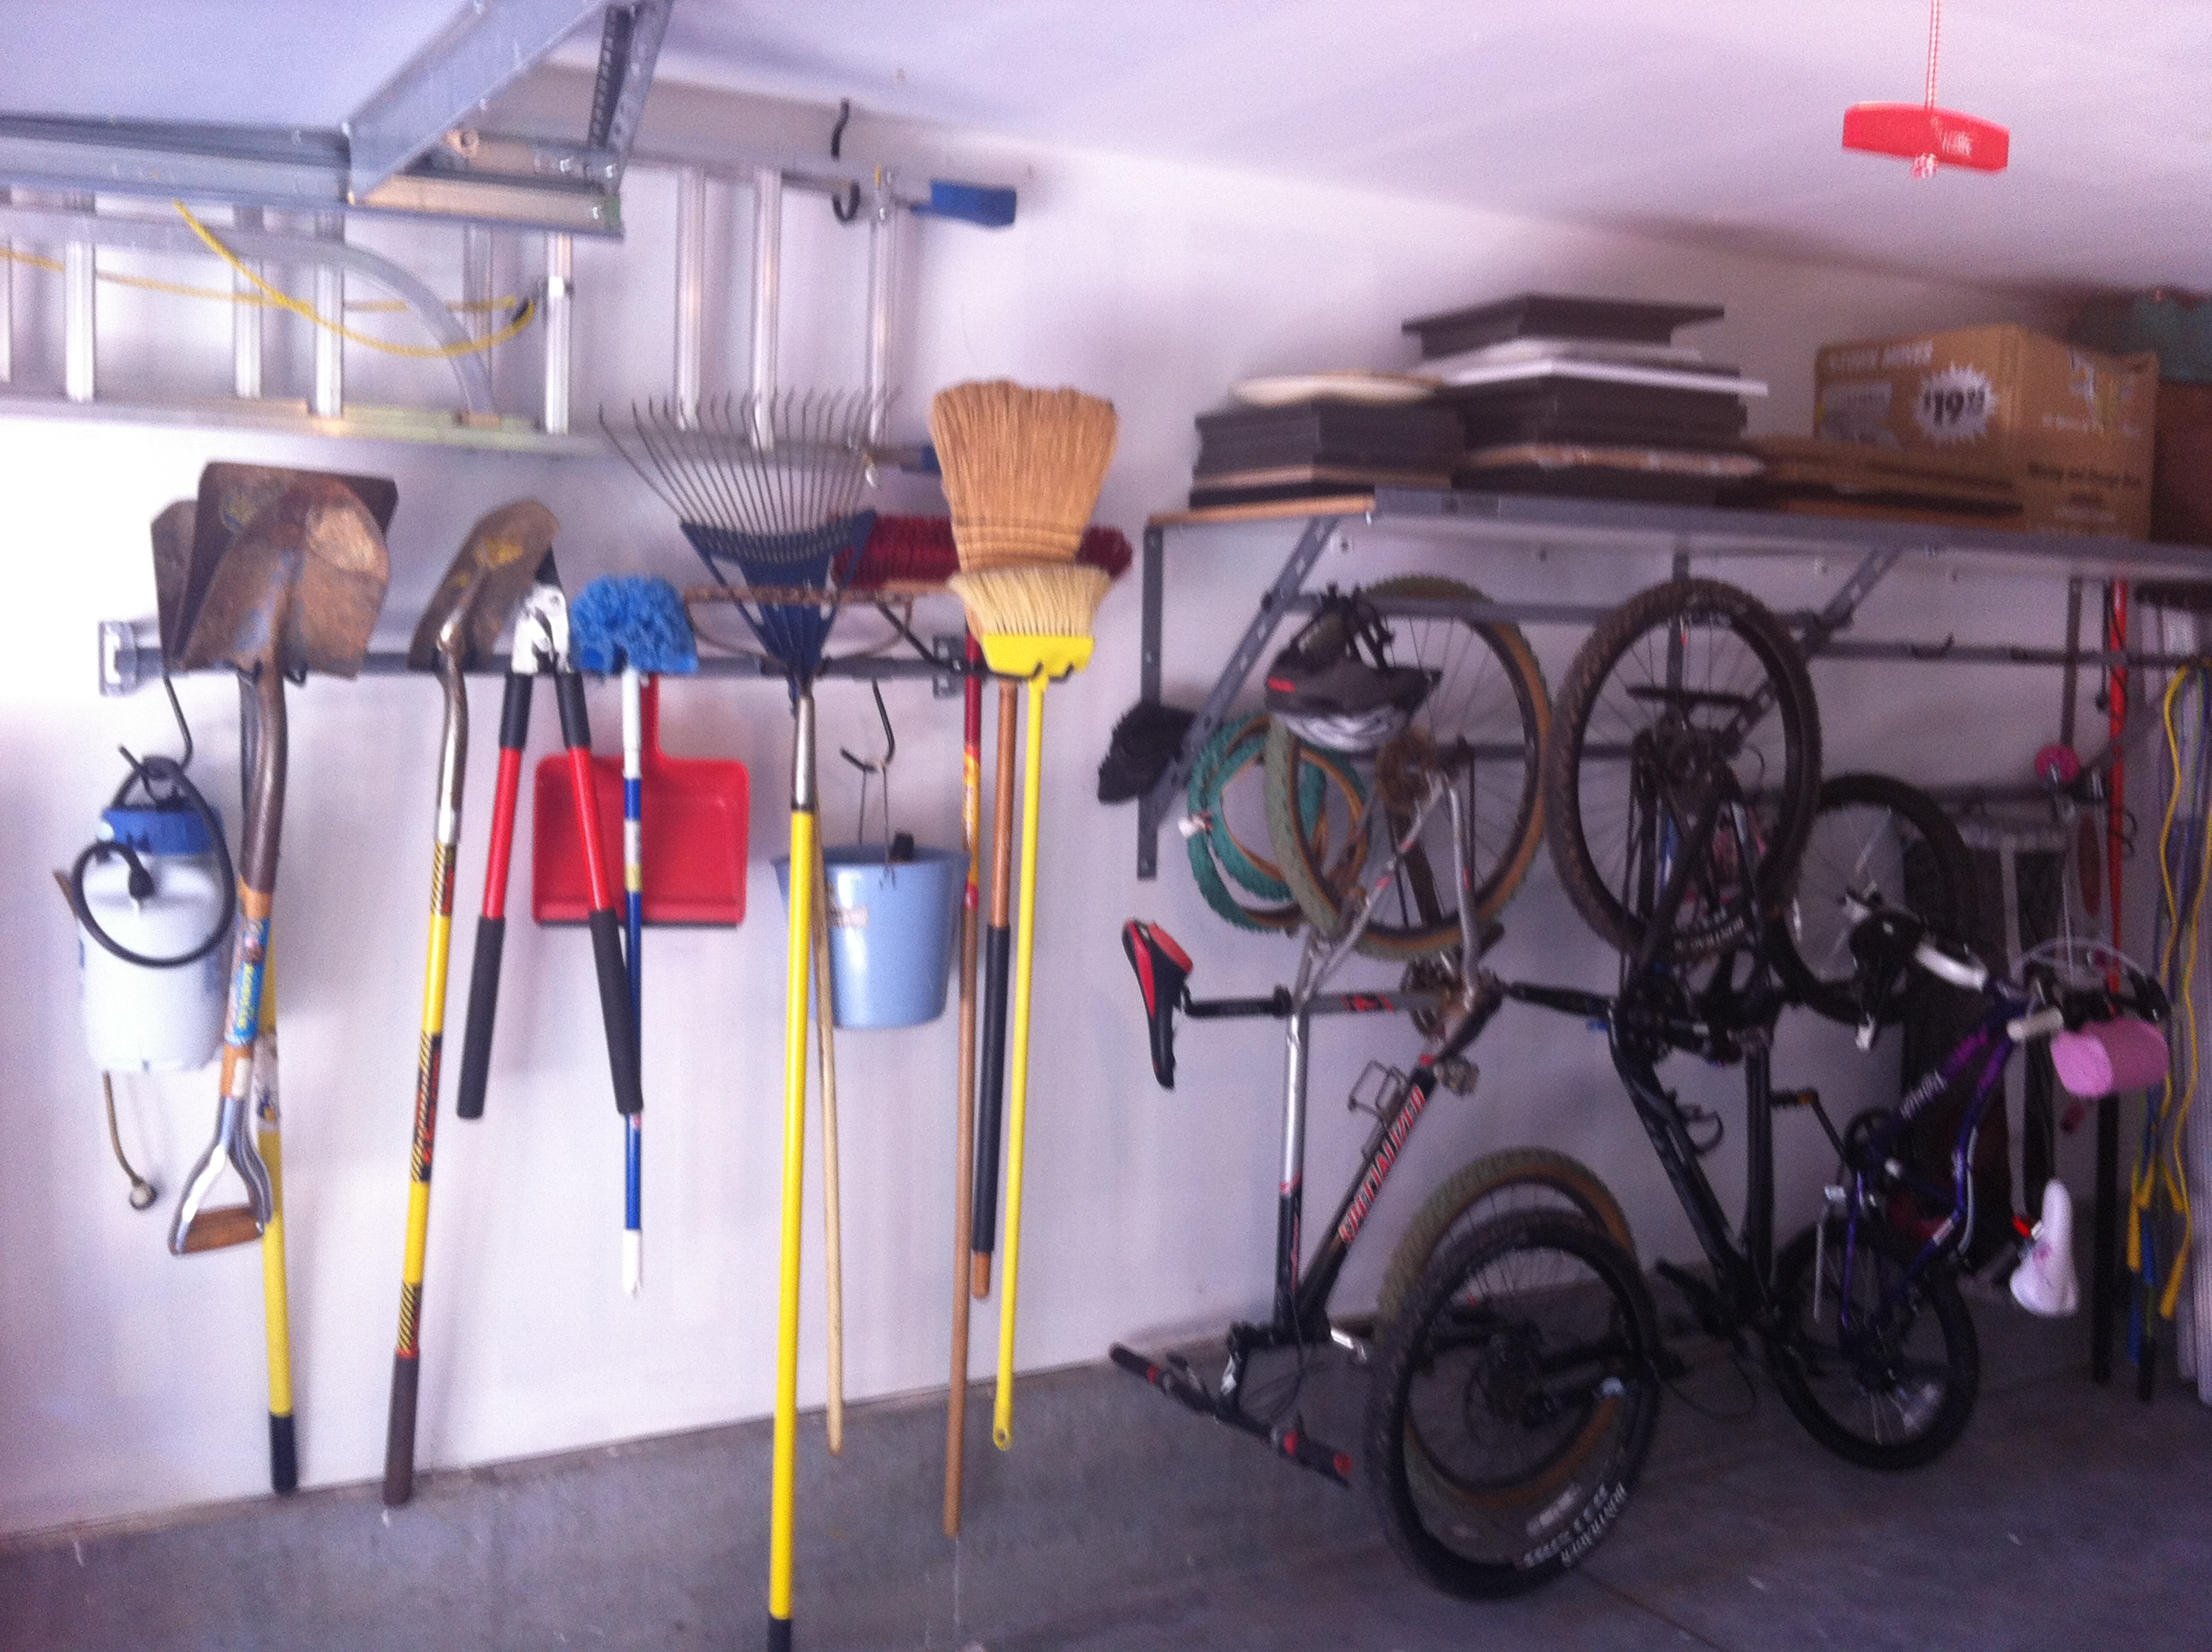 Wonderful Garage Tool Storage Ideas Shelving Santa Clara Yard Tools And Design Inspiration